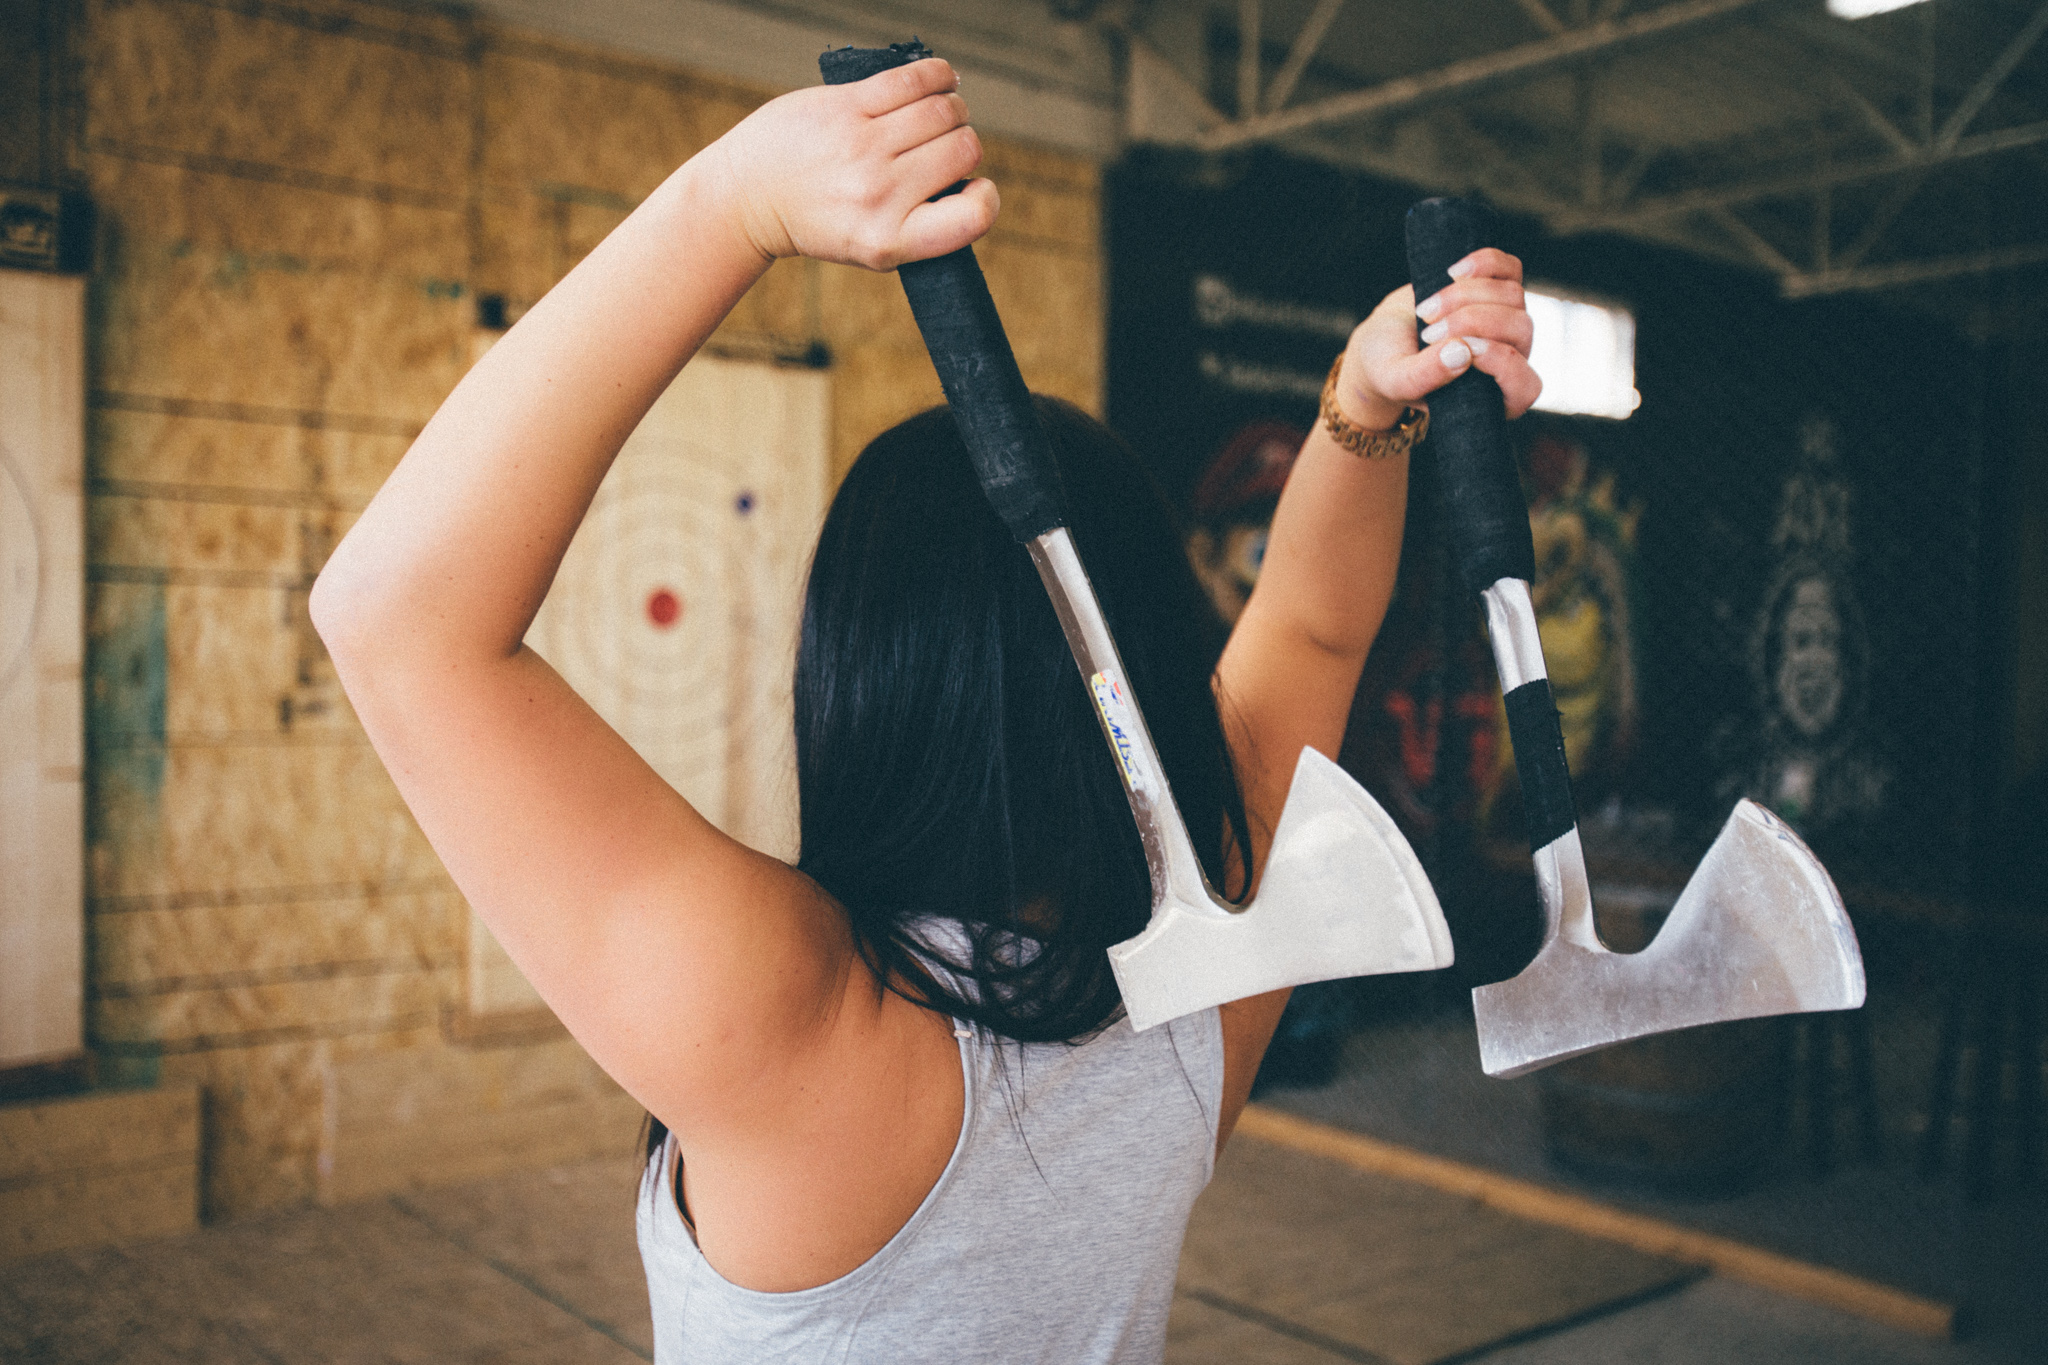 Go try Axe Throwing at Bad Axe Throwing today!